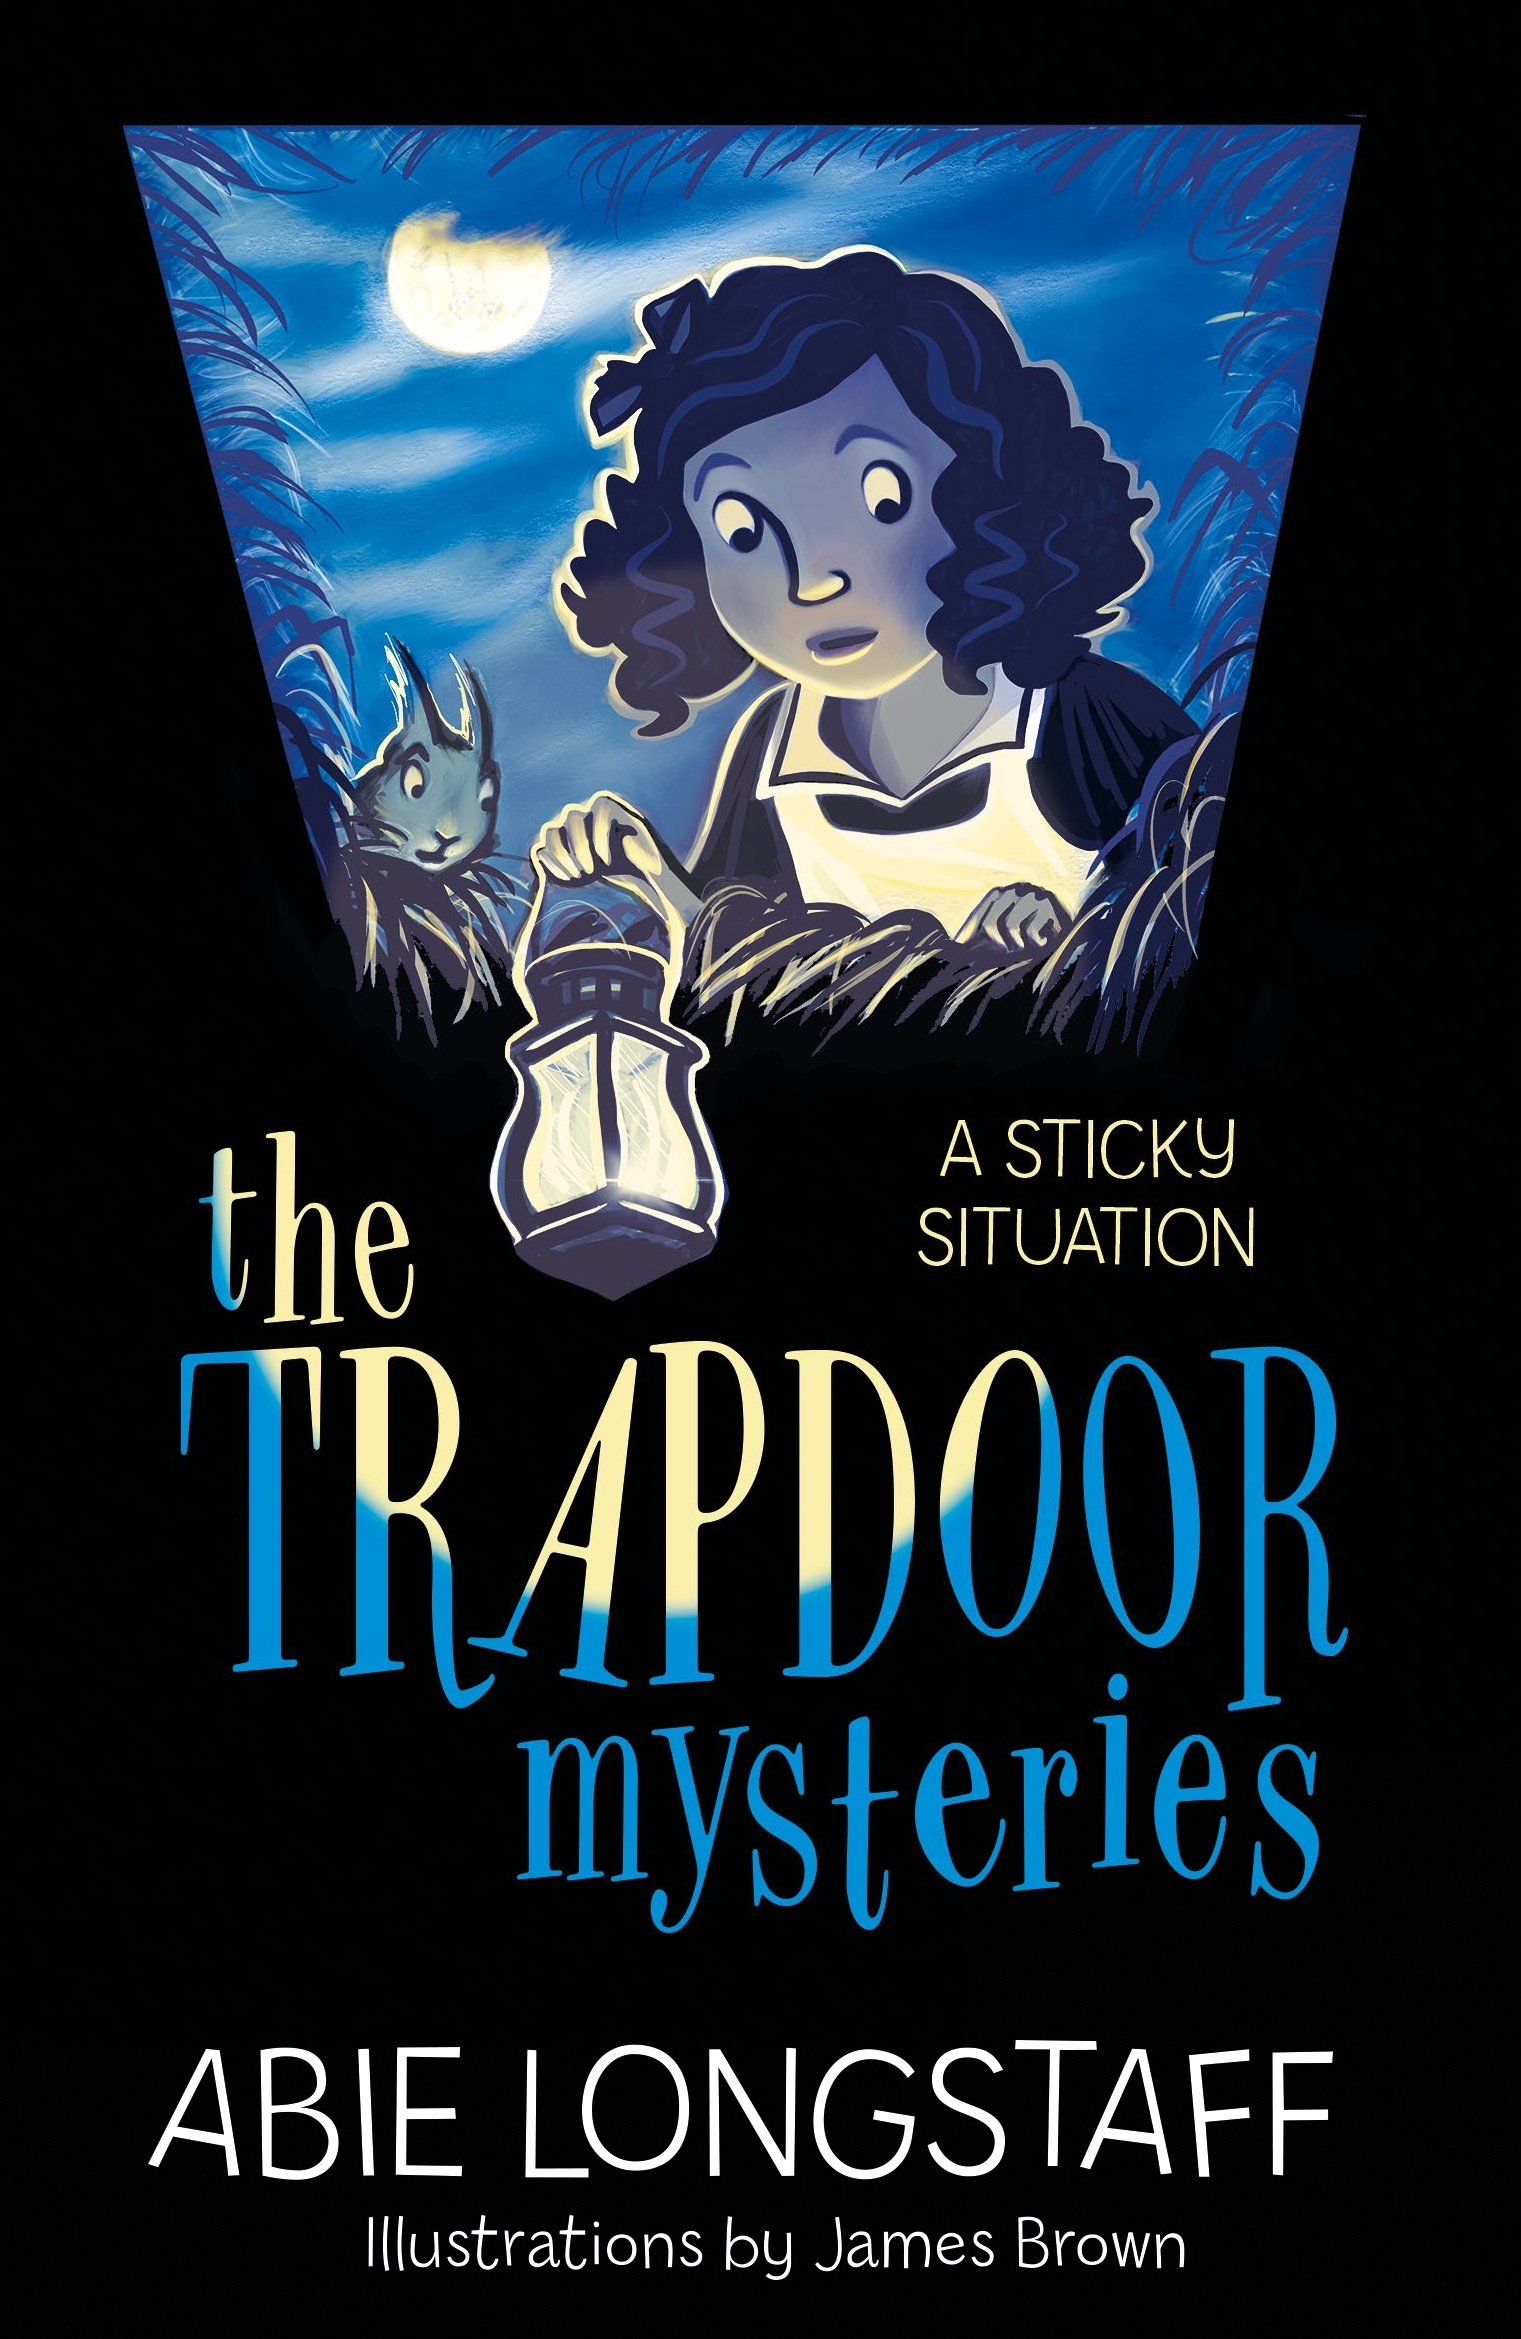 The Trapdoor Mysteries: Sticky Situation